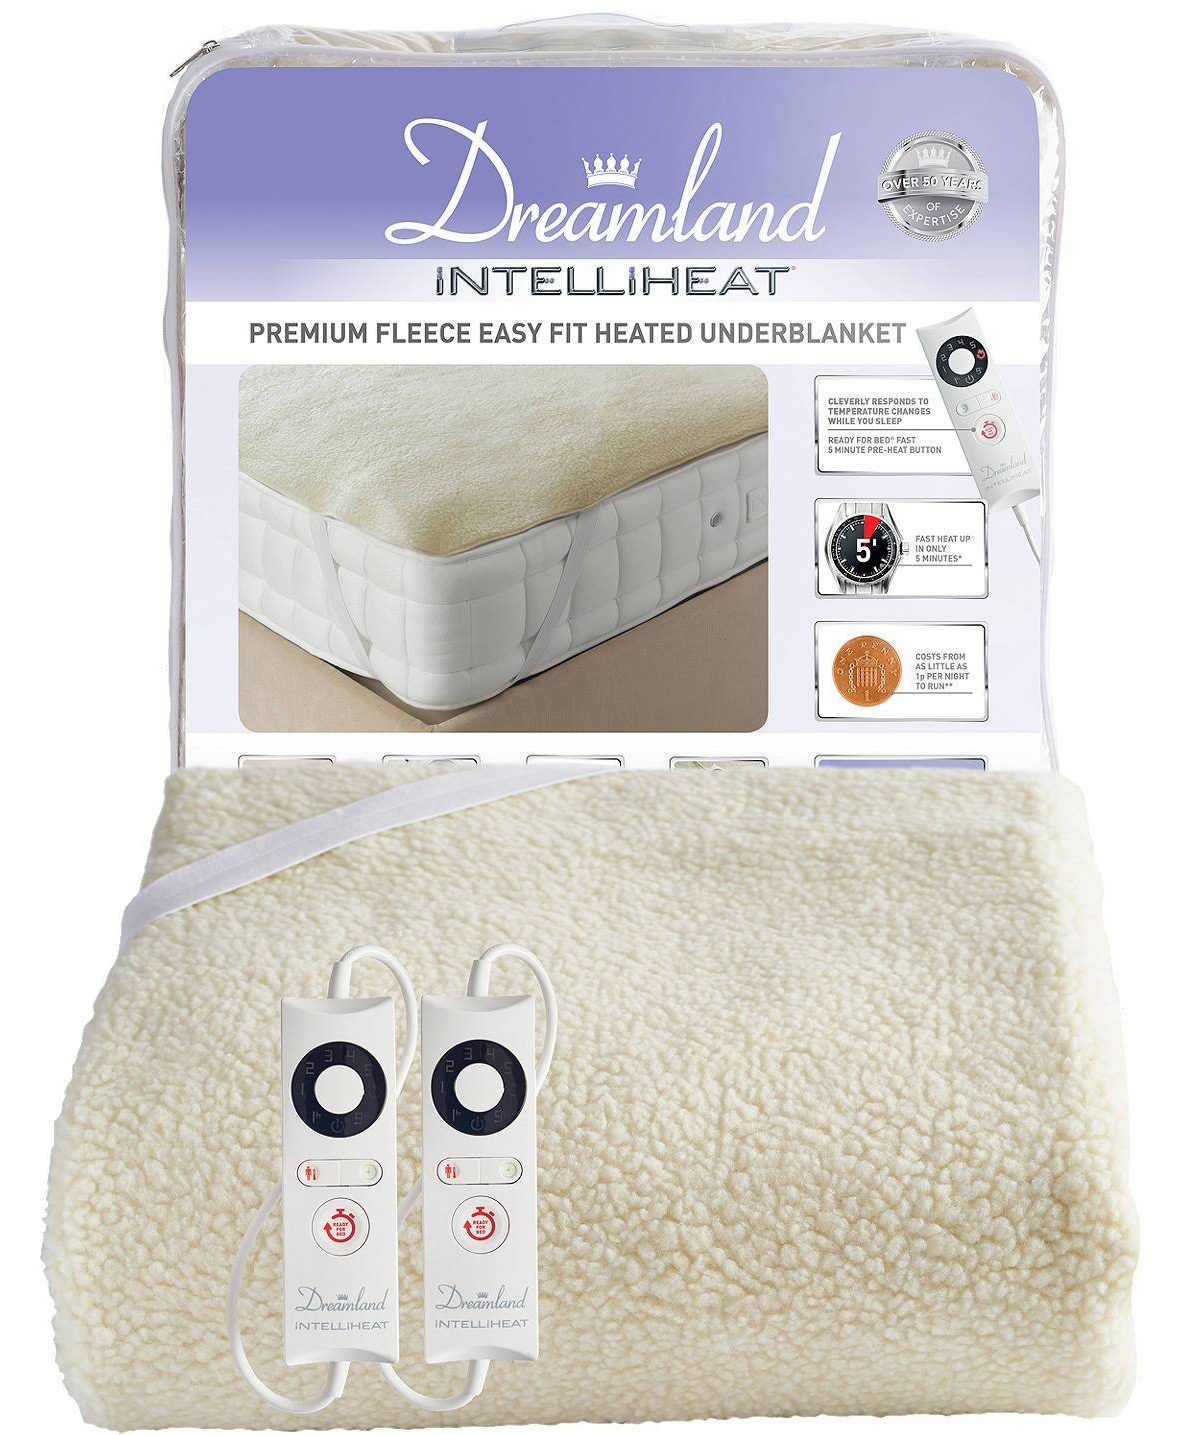 Sleep well: How to win at sleeping! (and why you should want to). How to get a better night's sleep. Image of Dreamland Intelliheat dual controlled electric blanket